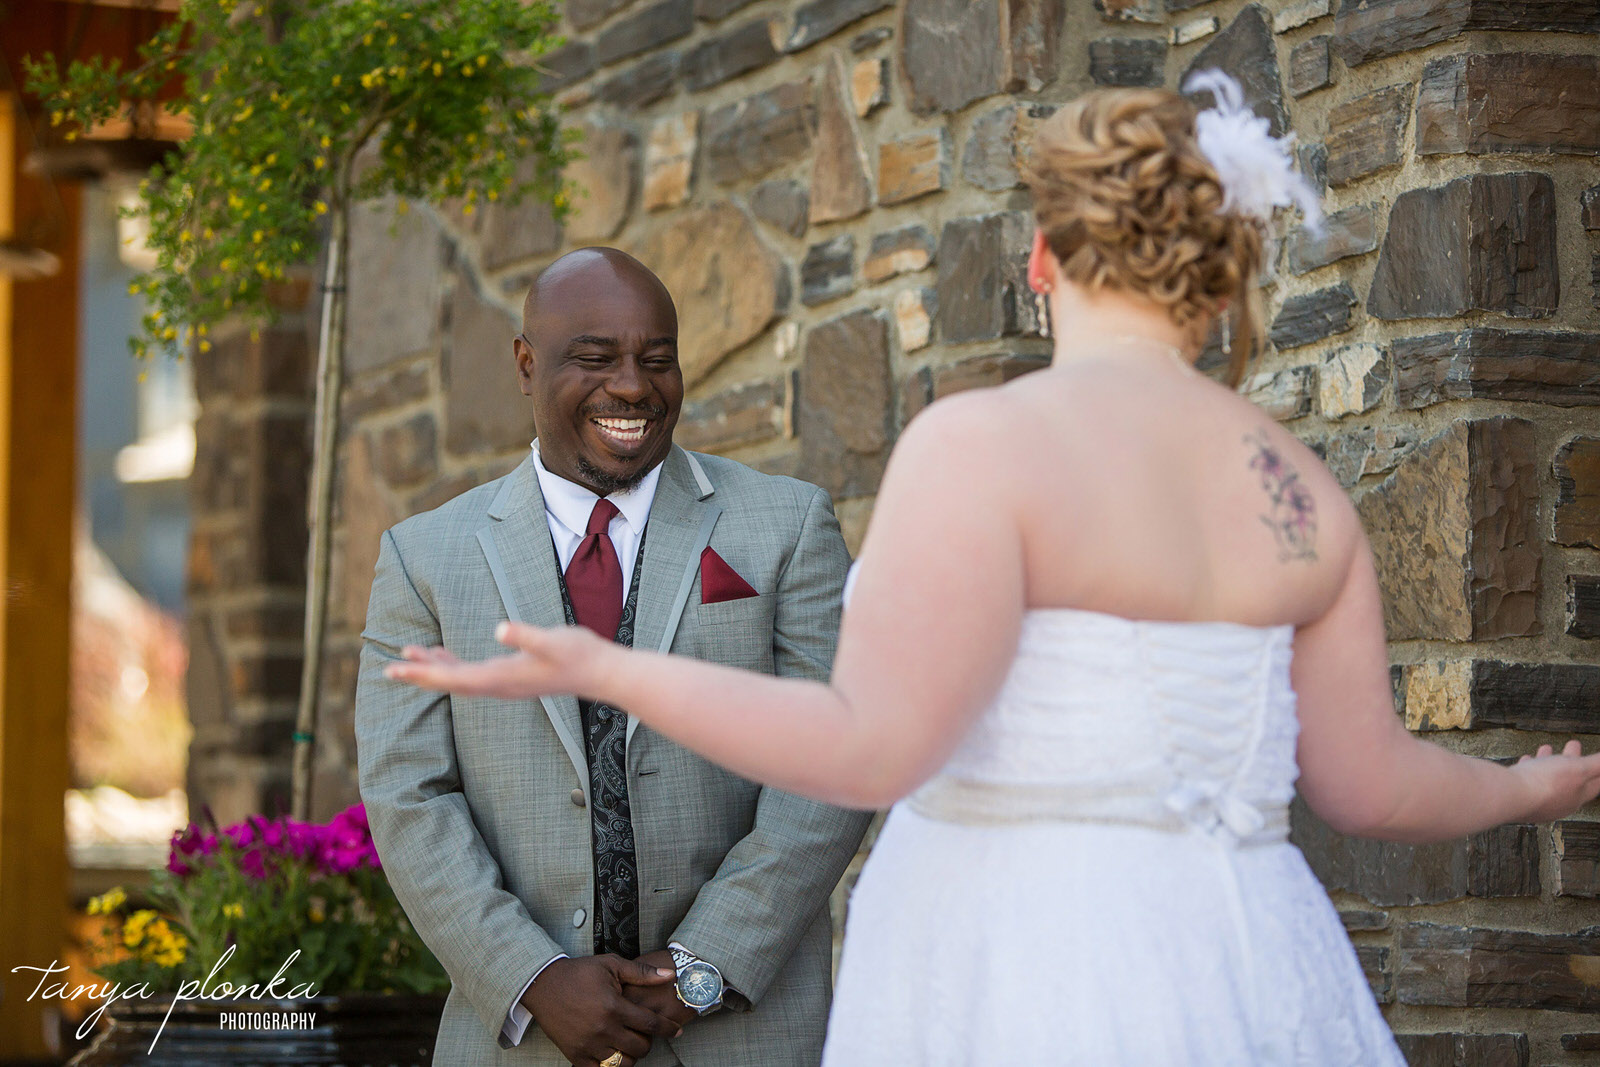 groom has huge smiling while seeing bride for the first time at Azuridge Estate